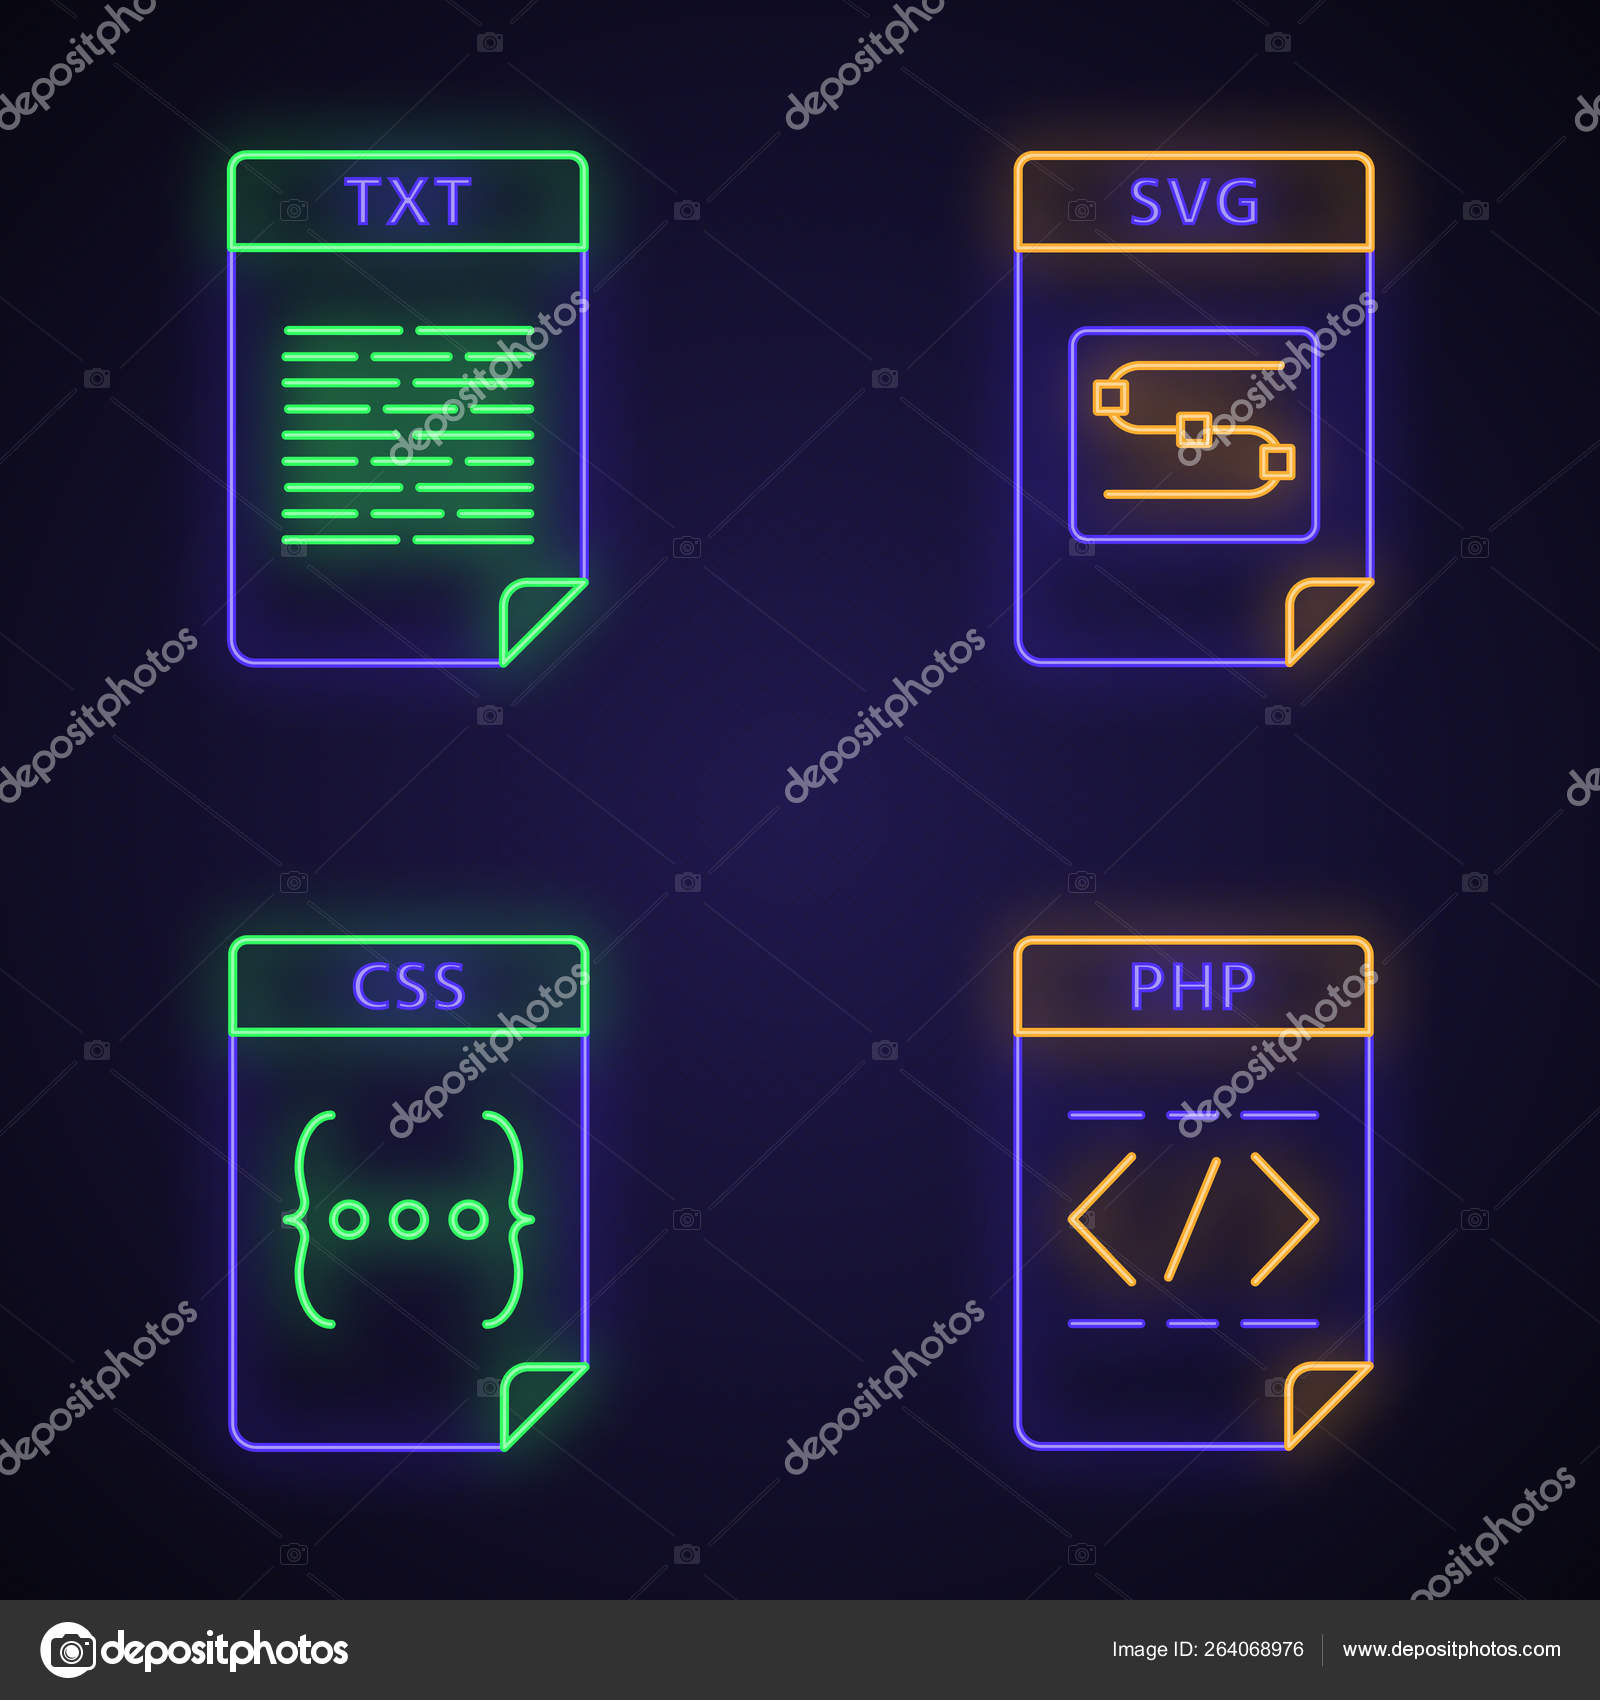 Files format neon light icons set — Stock Vector © bsd